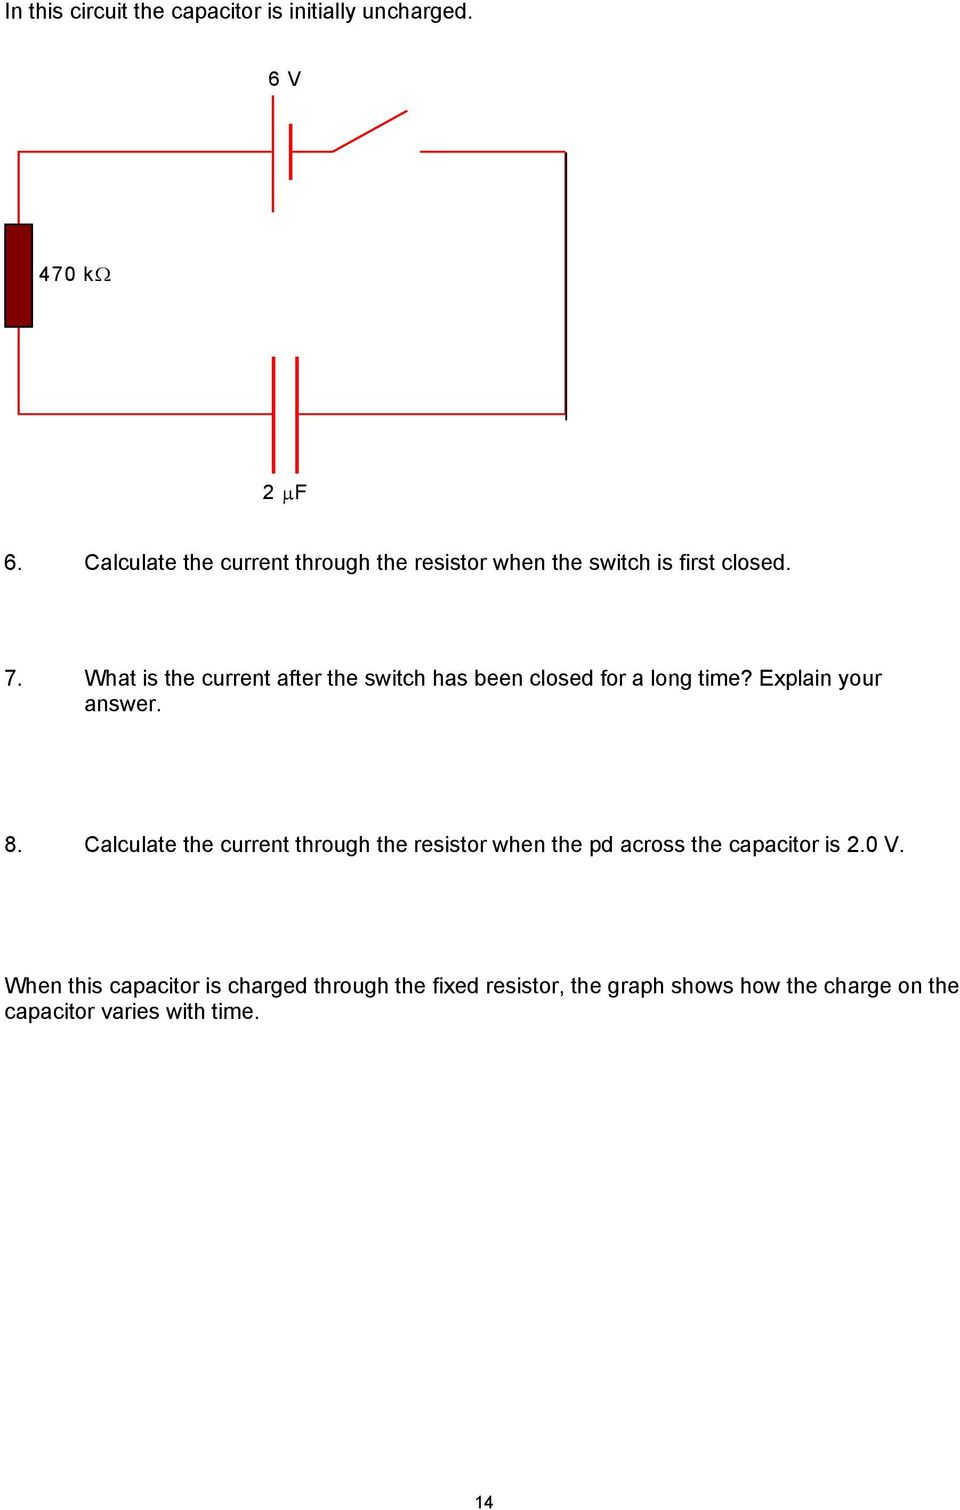 Episode 126 Capacitance And The Equation C Q V Pdf Capacitor In A Dc Circuit There Is 9v Battery Series With What Current After Switch Has Been Closed For Long Time Explain